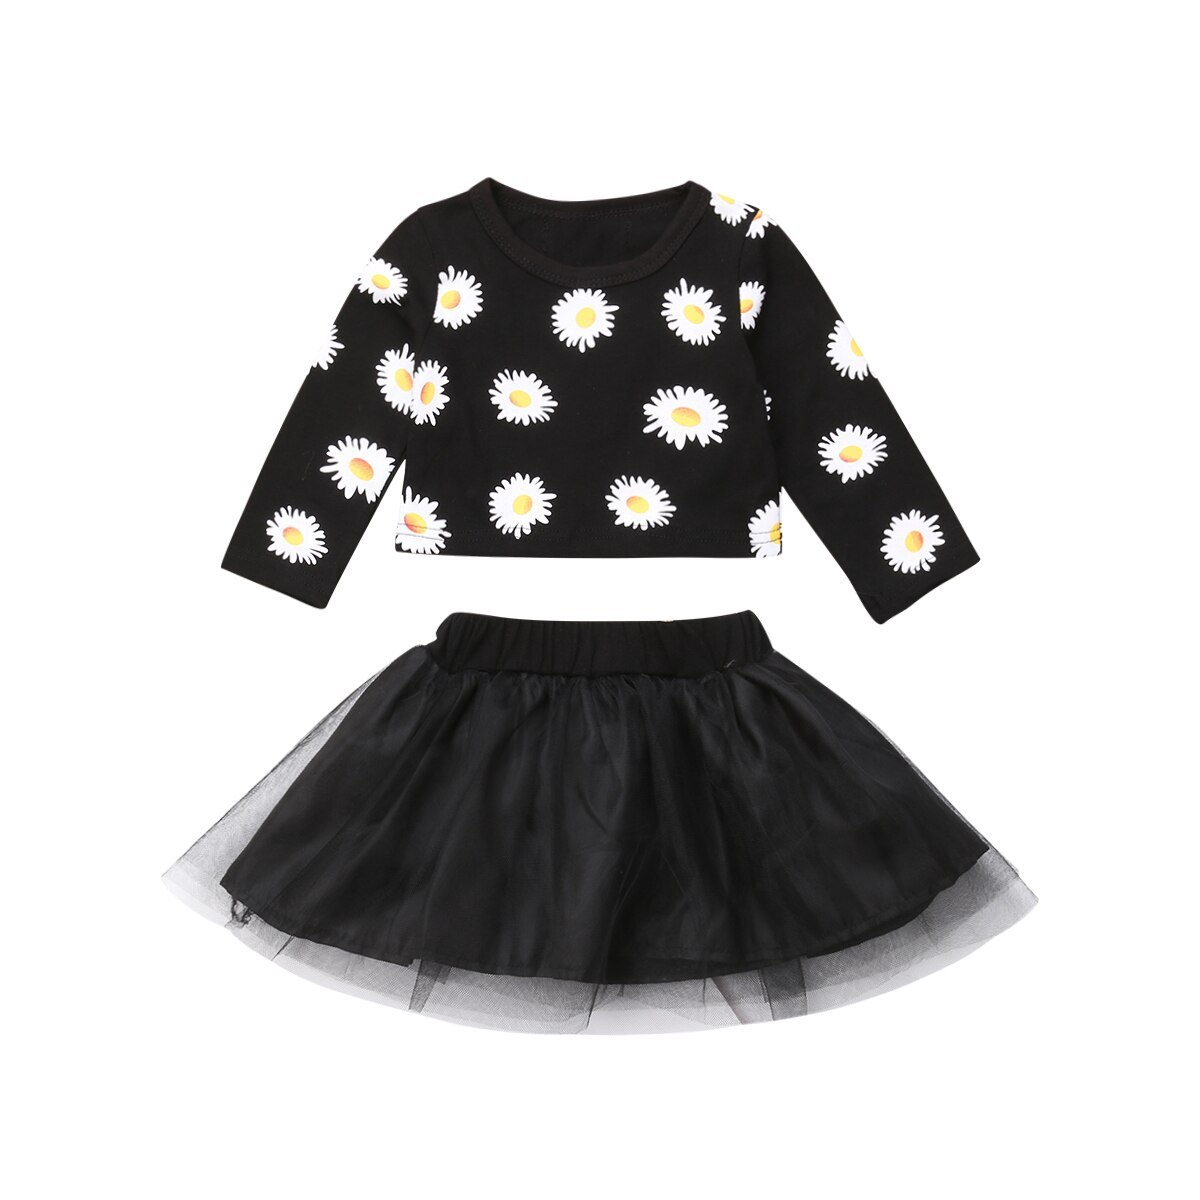 Fashion Newborn Baby Girls Flower Long Sleeve Tops Tulle Skirt Outfits Clothes-i